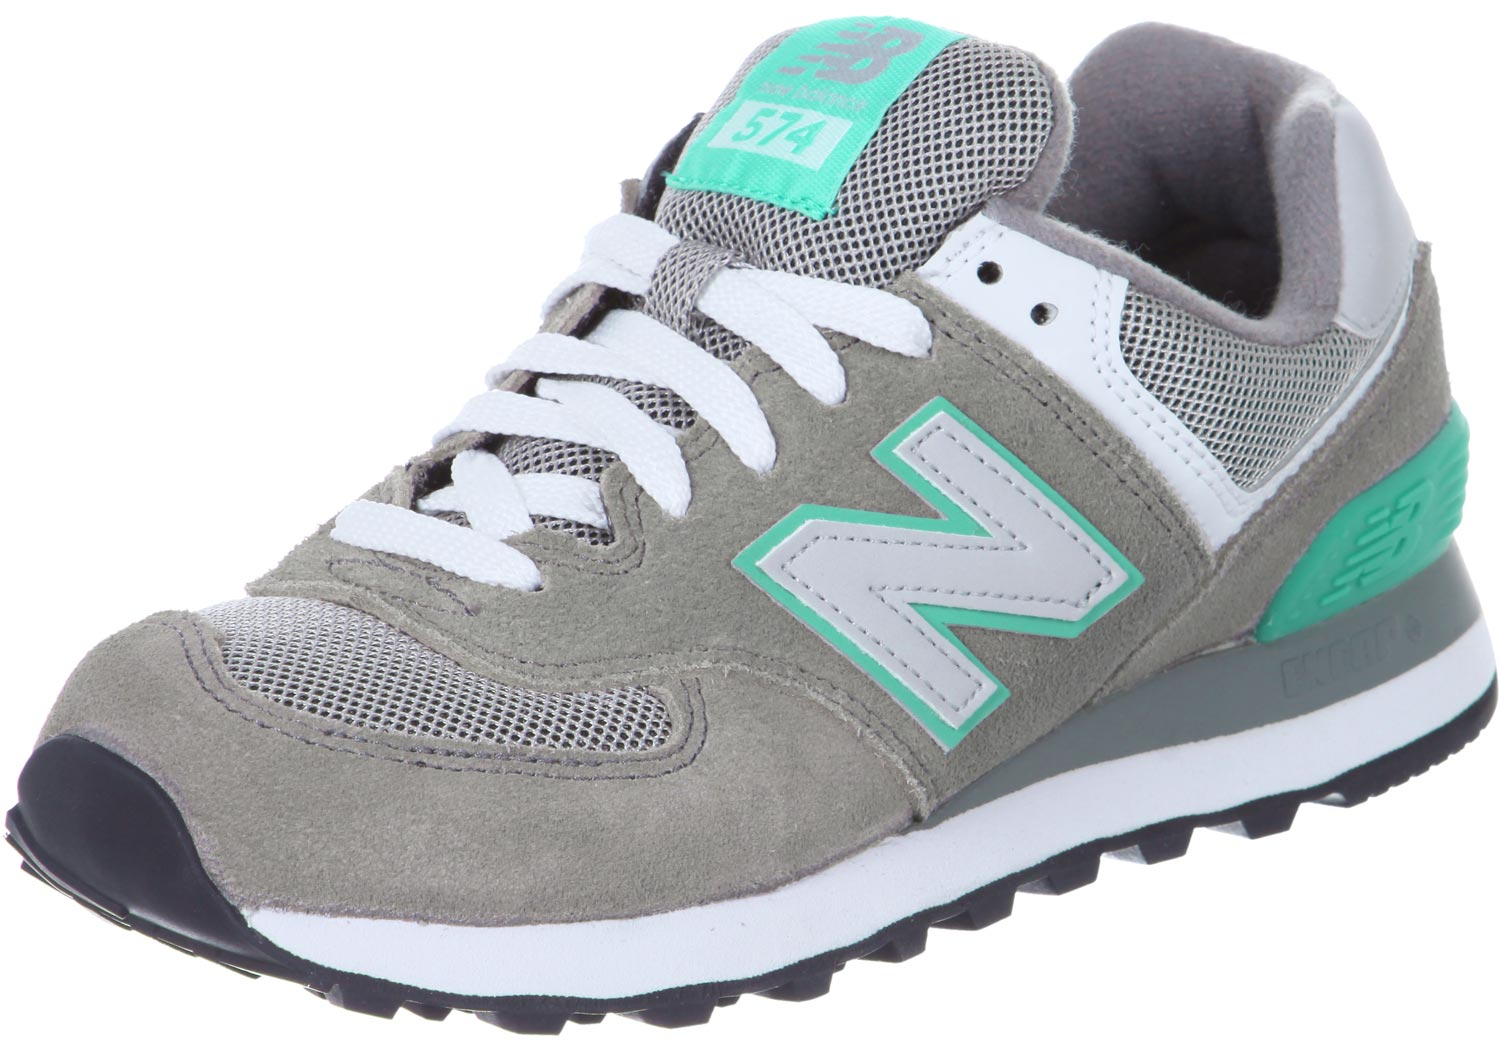 new balance turquoise gris, New Balance WL574 W chaussures